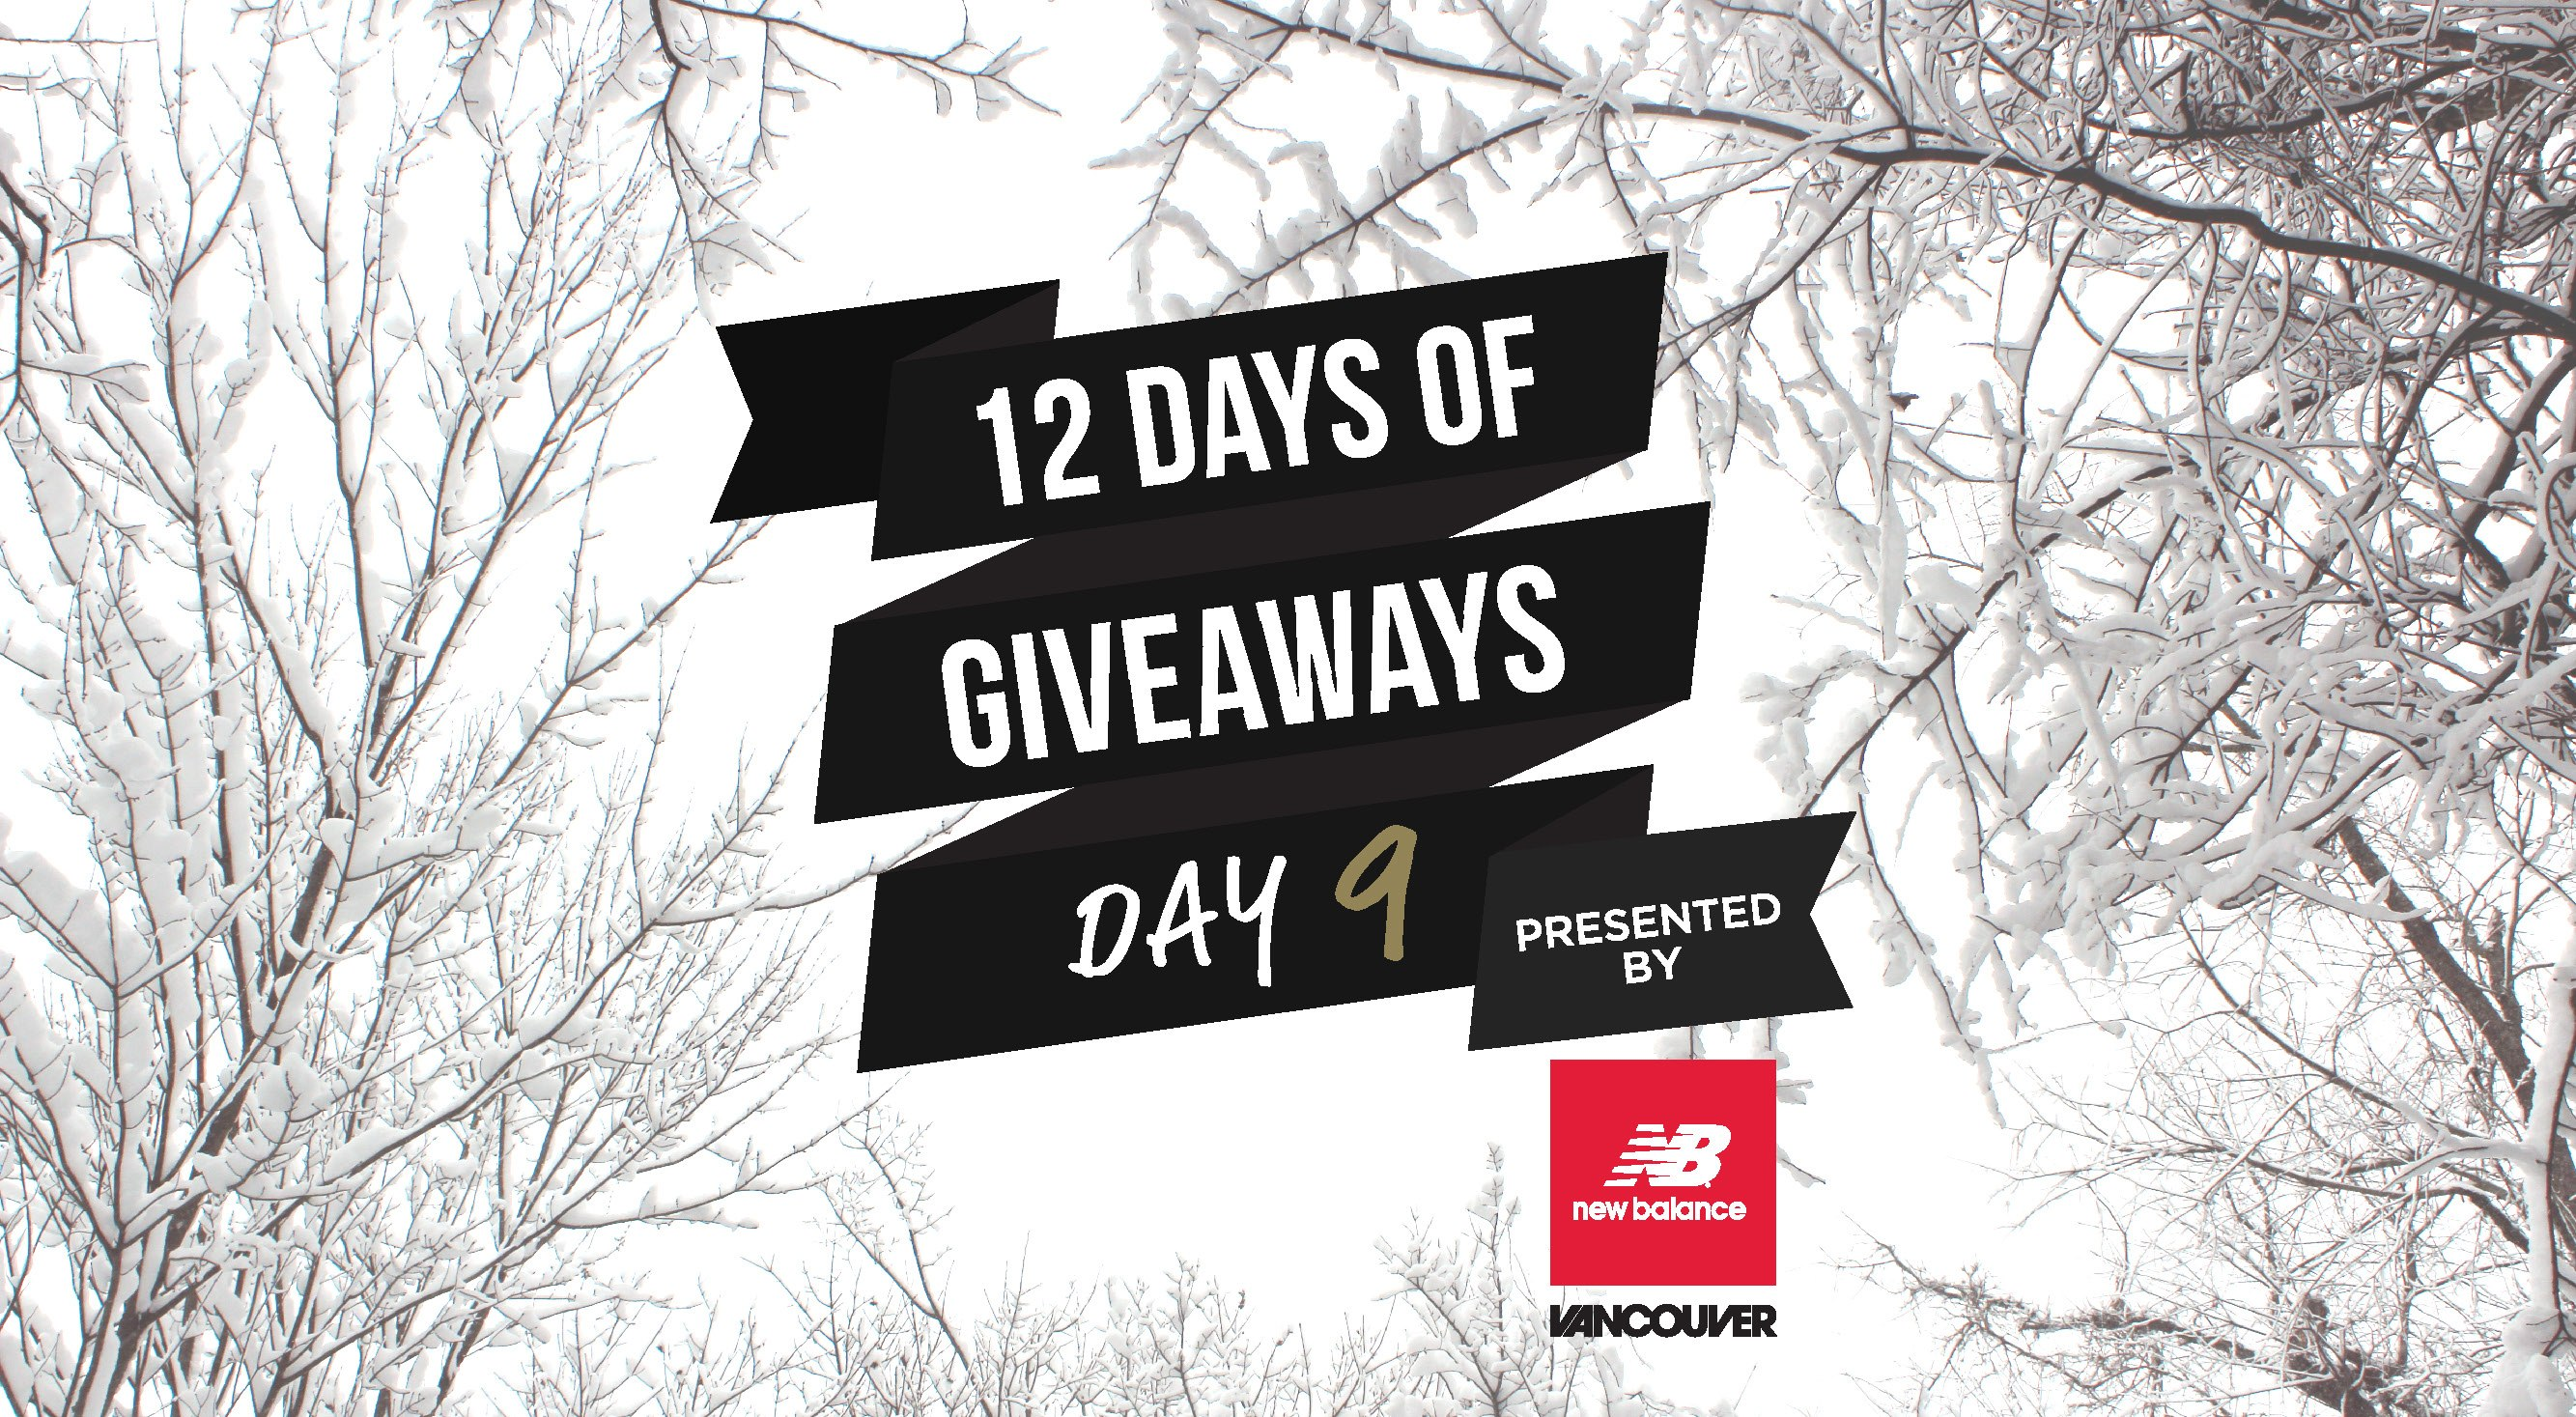 12 Days of Giveaways: See 4 amazing concerts with Live Nation